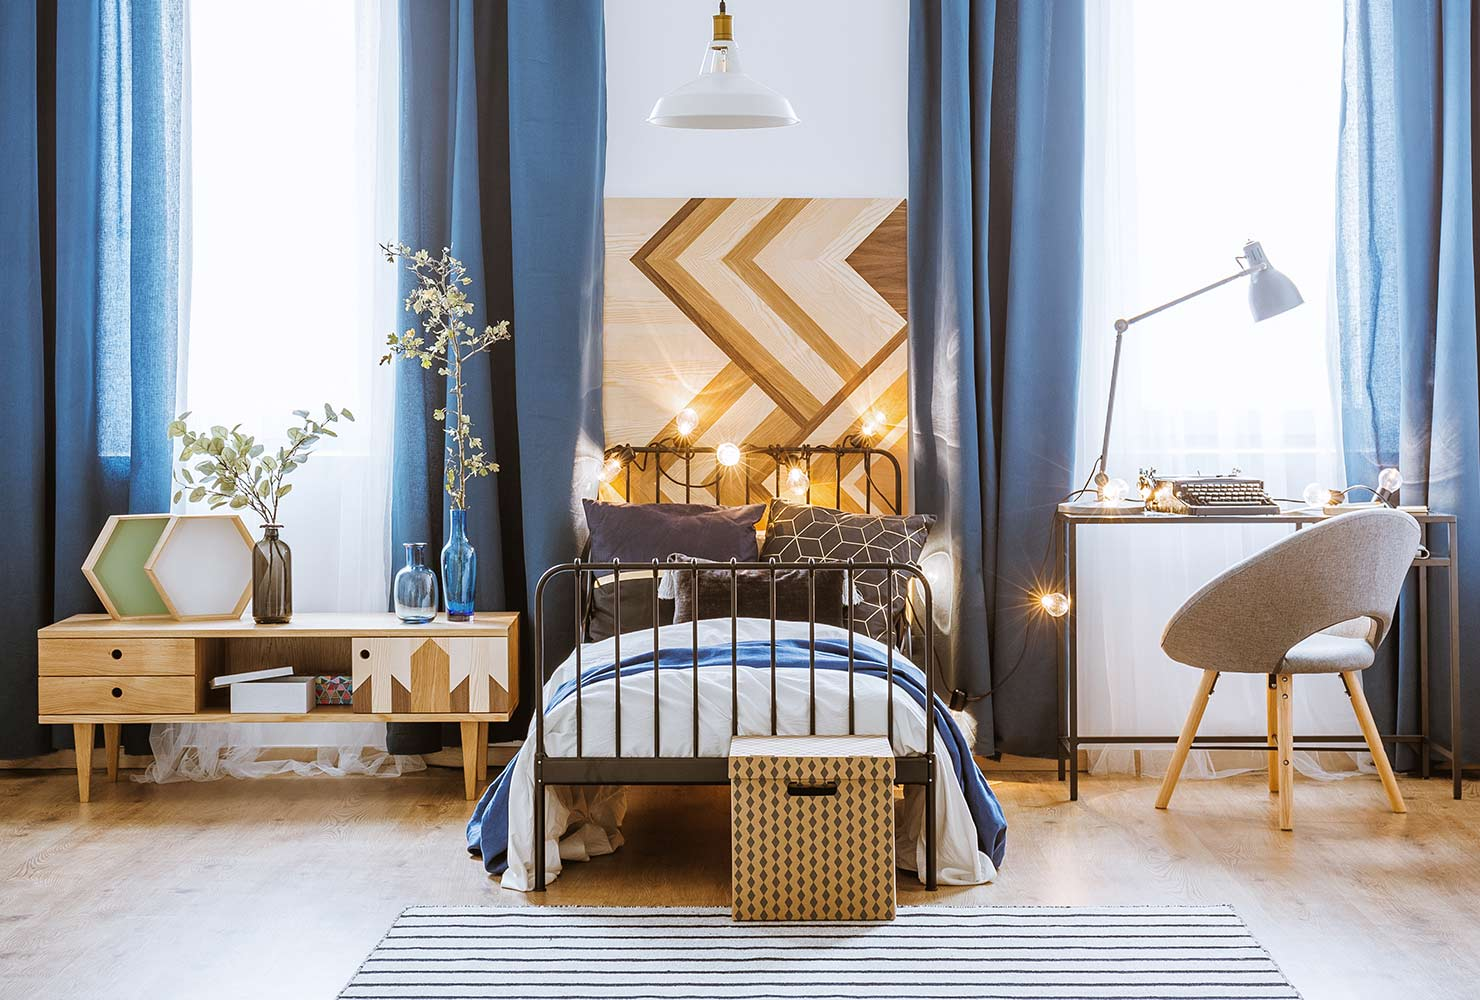 Wooden headboard and blue curtains.